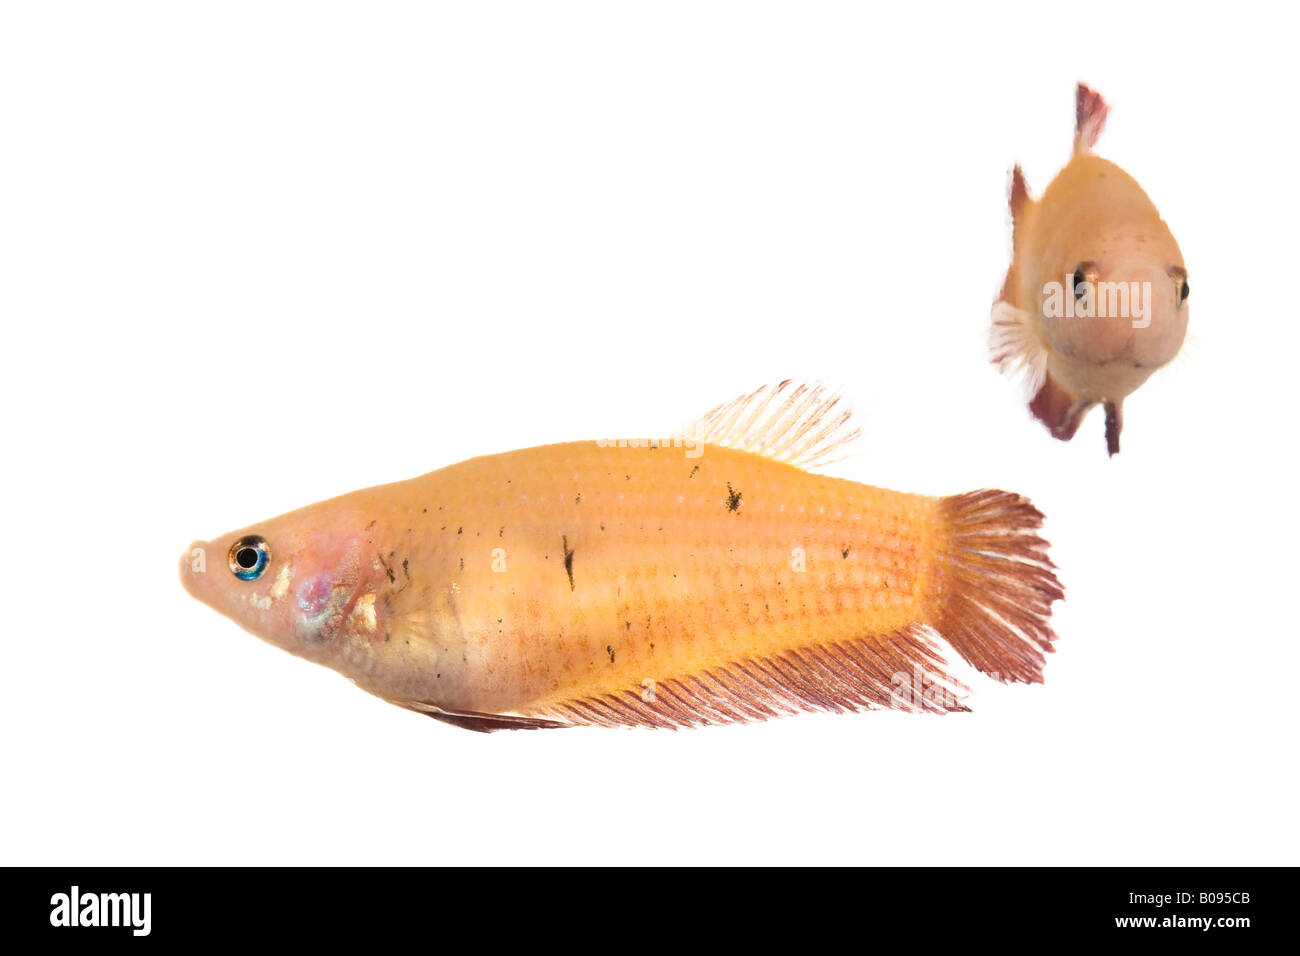 Siamese Fighting Fish, female (Betta splendens) Stock Photo